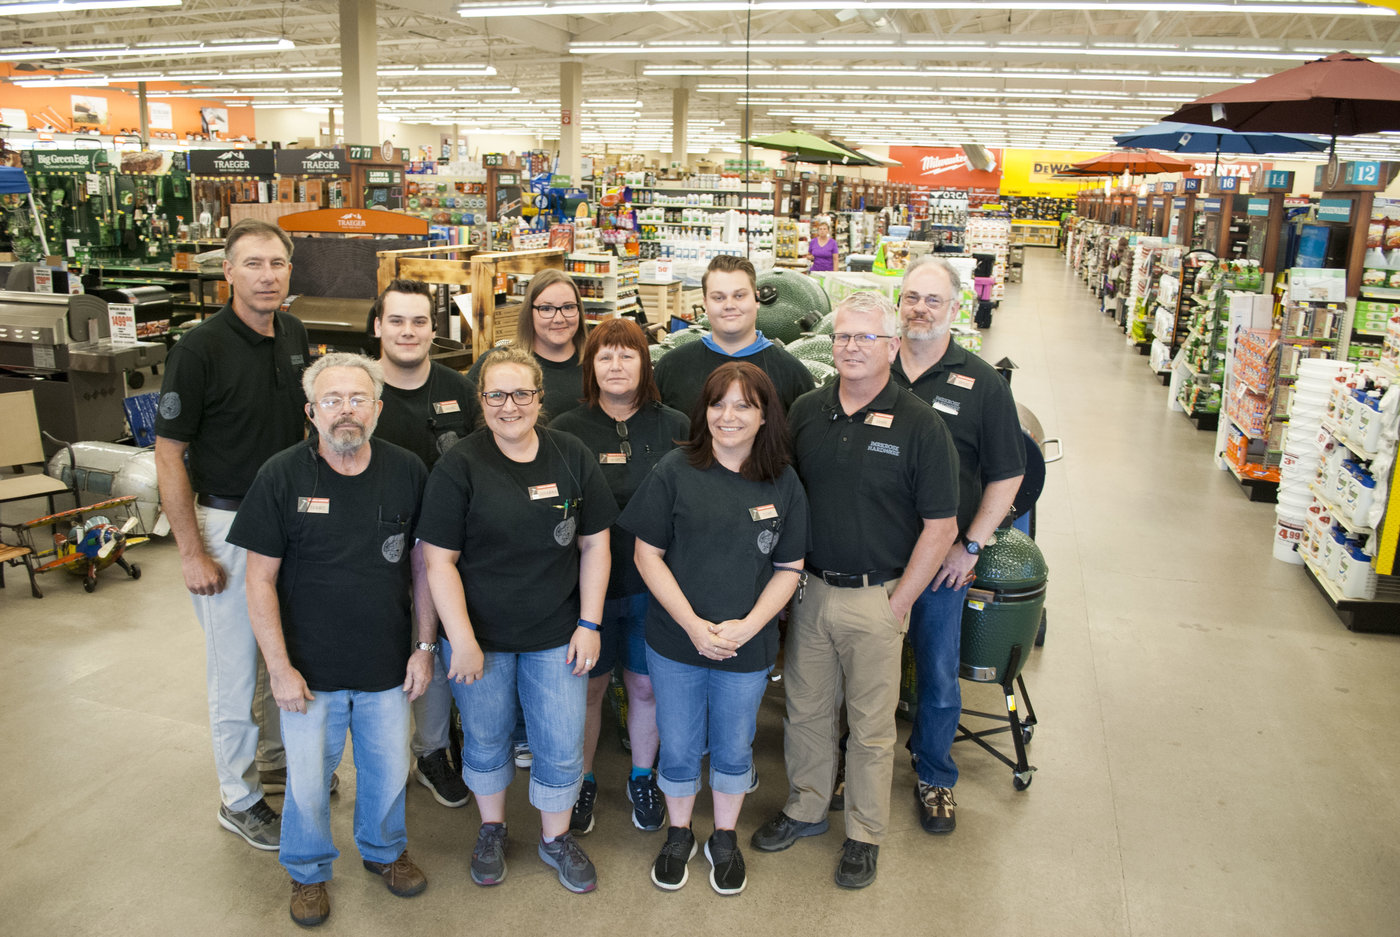 The staff at Parkrose Hardware, known collectively as the Hazel Nuts, delivers exceptional customer service that stands out.